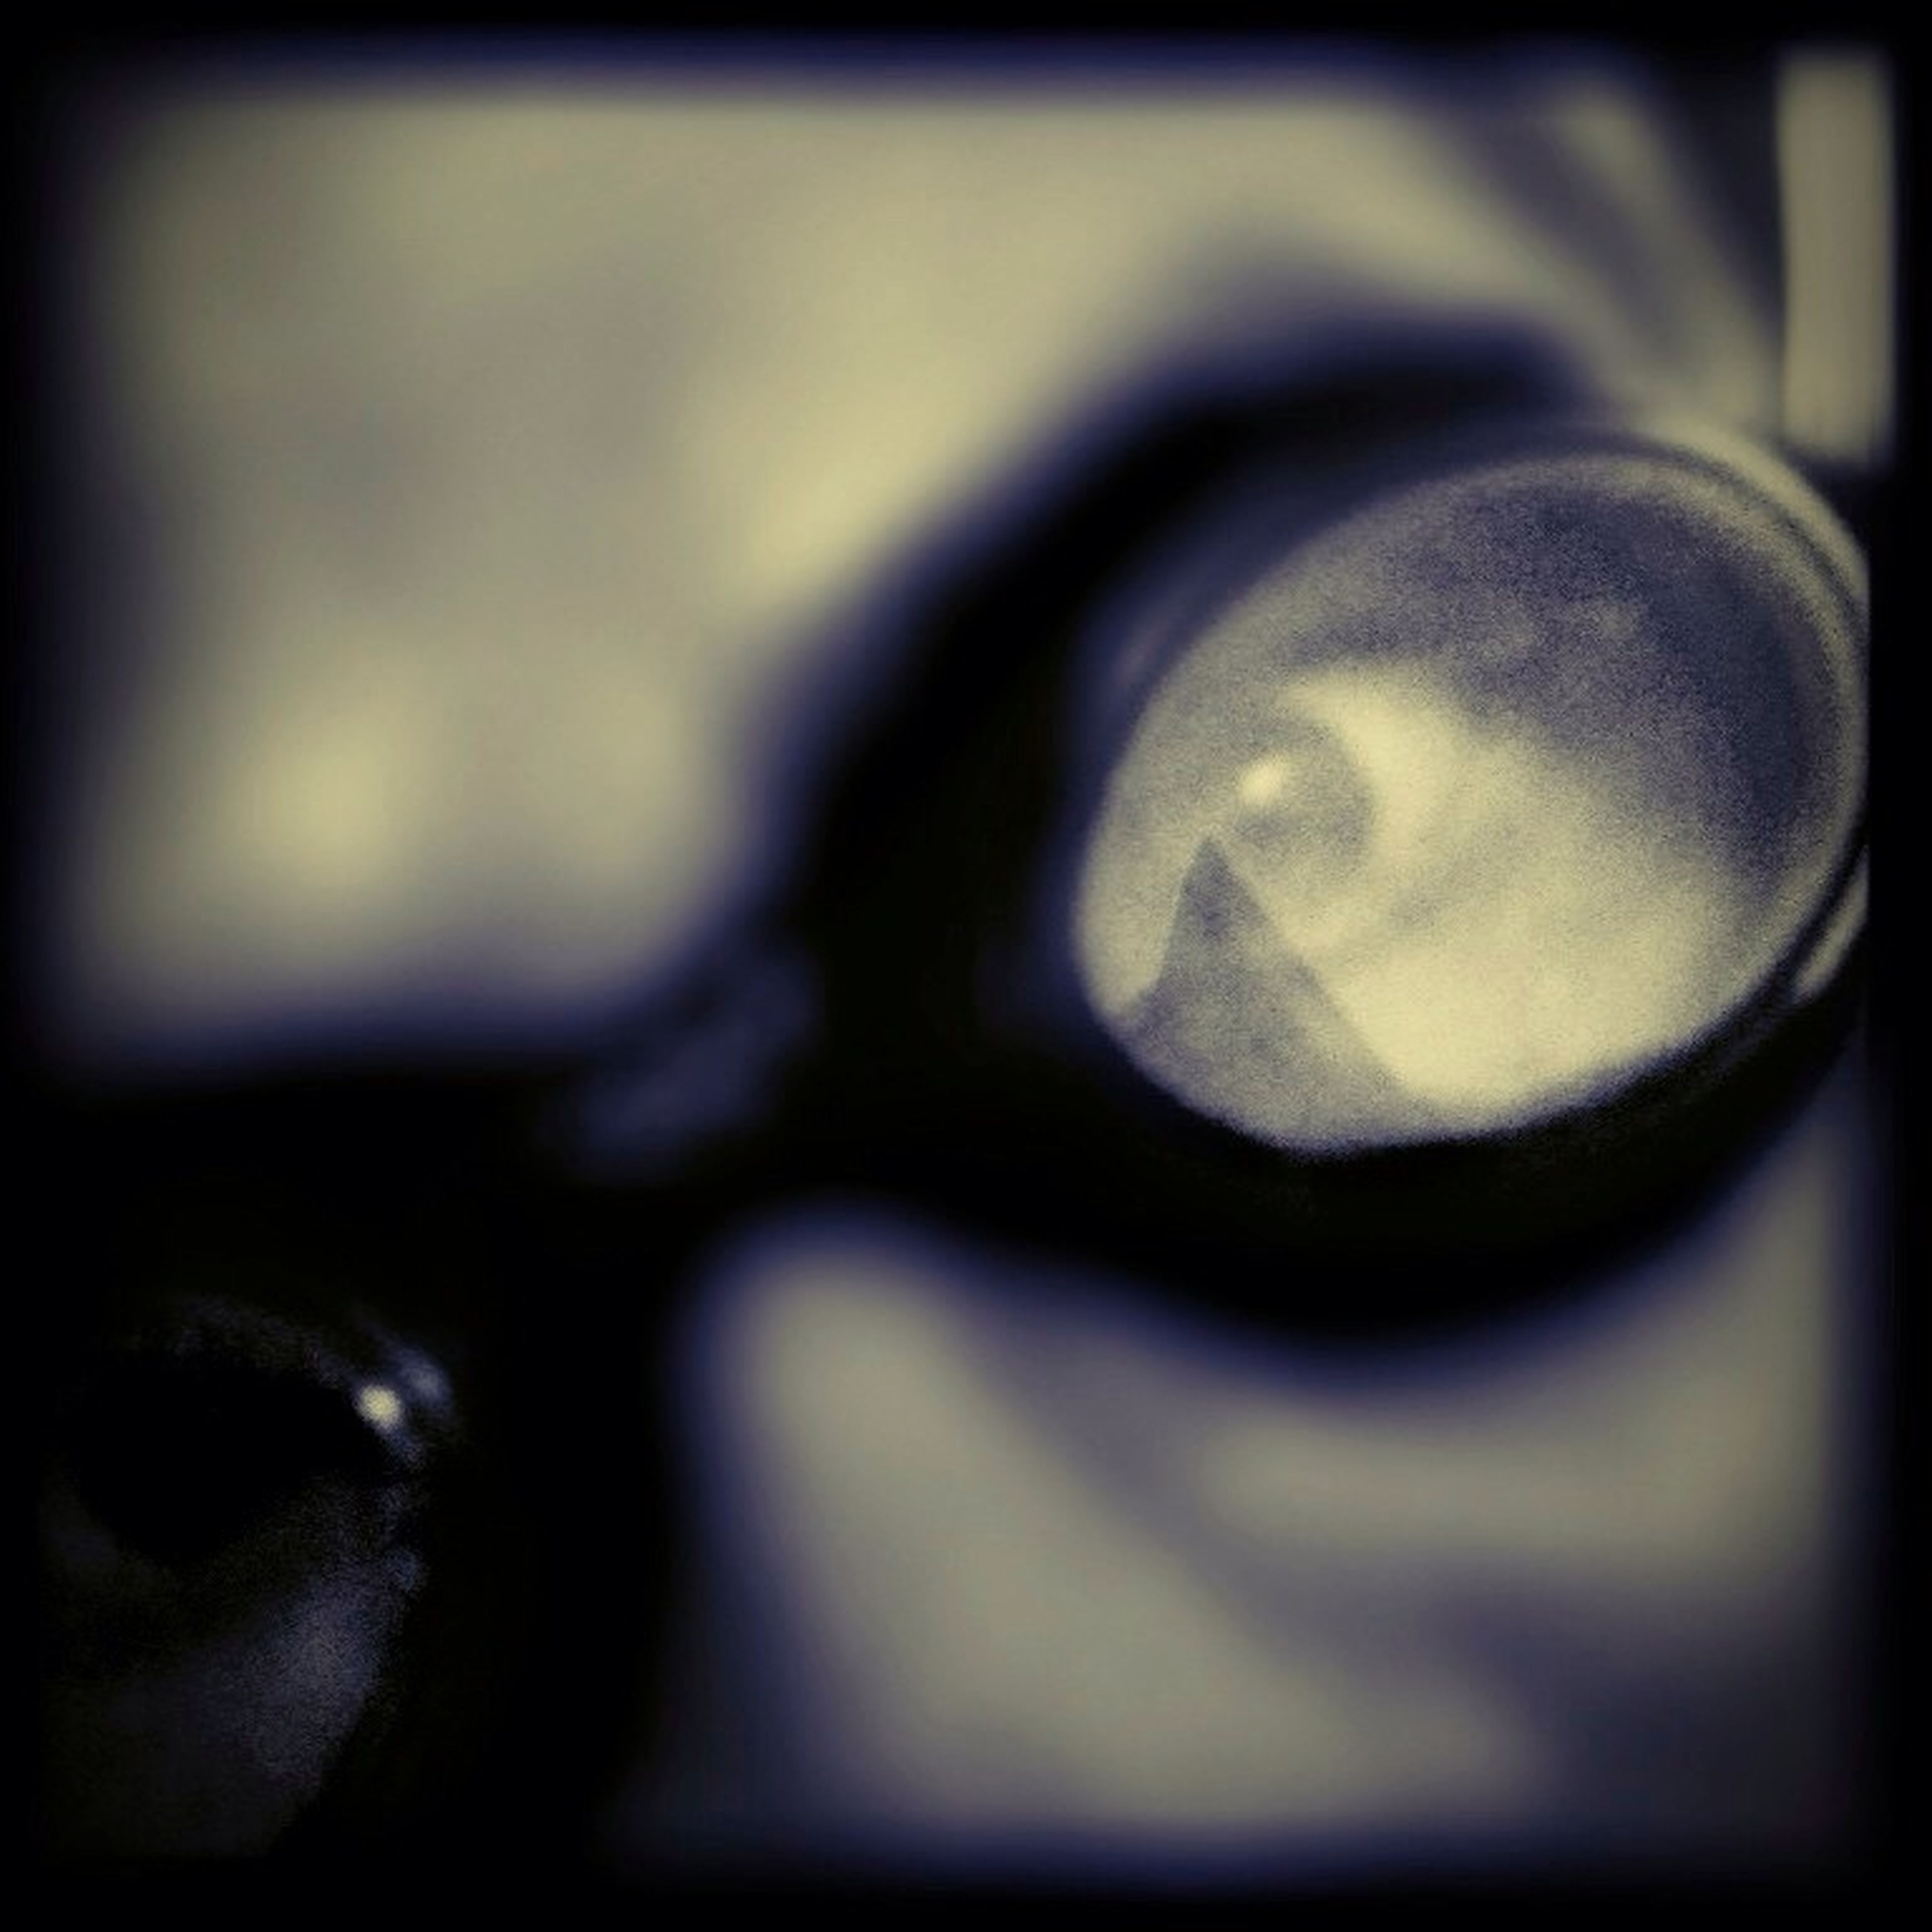 close-up, indoors, auto post production filter, reflection, transfer print, selective focus, focus on foreground, part of, sunglasses, headshot, detail, day, photography themes, human face, human eye, cropped, glass - material